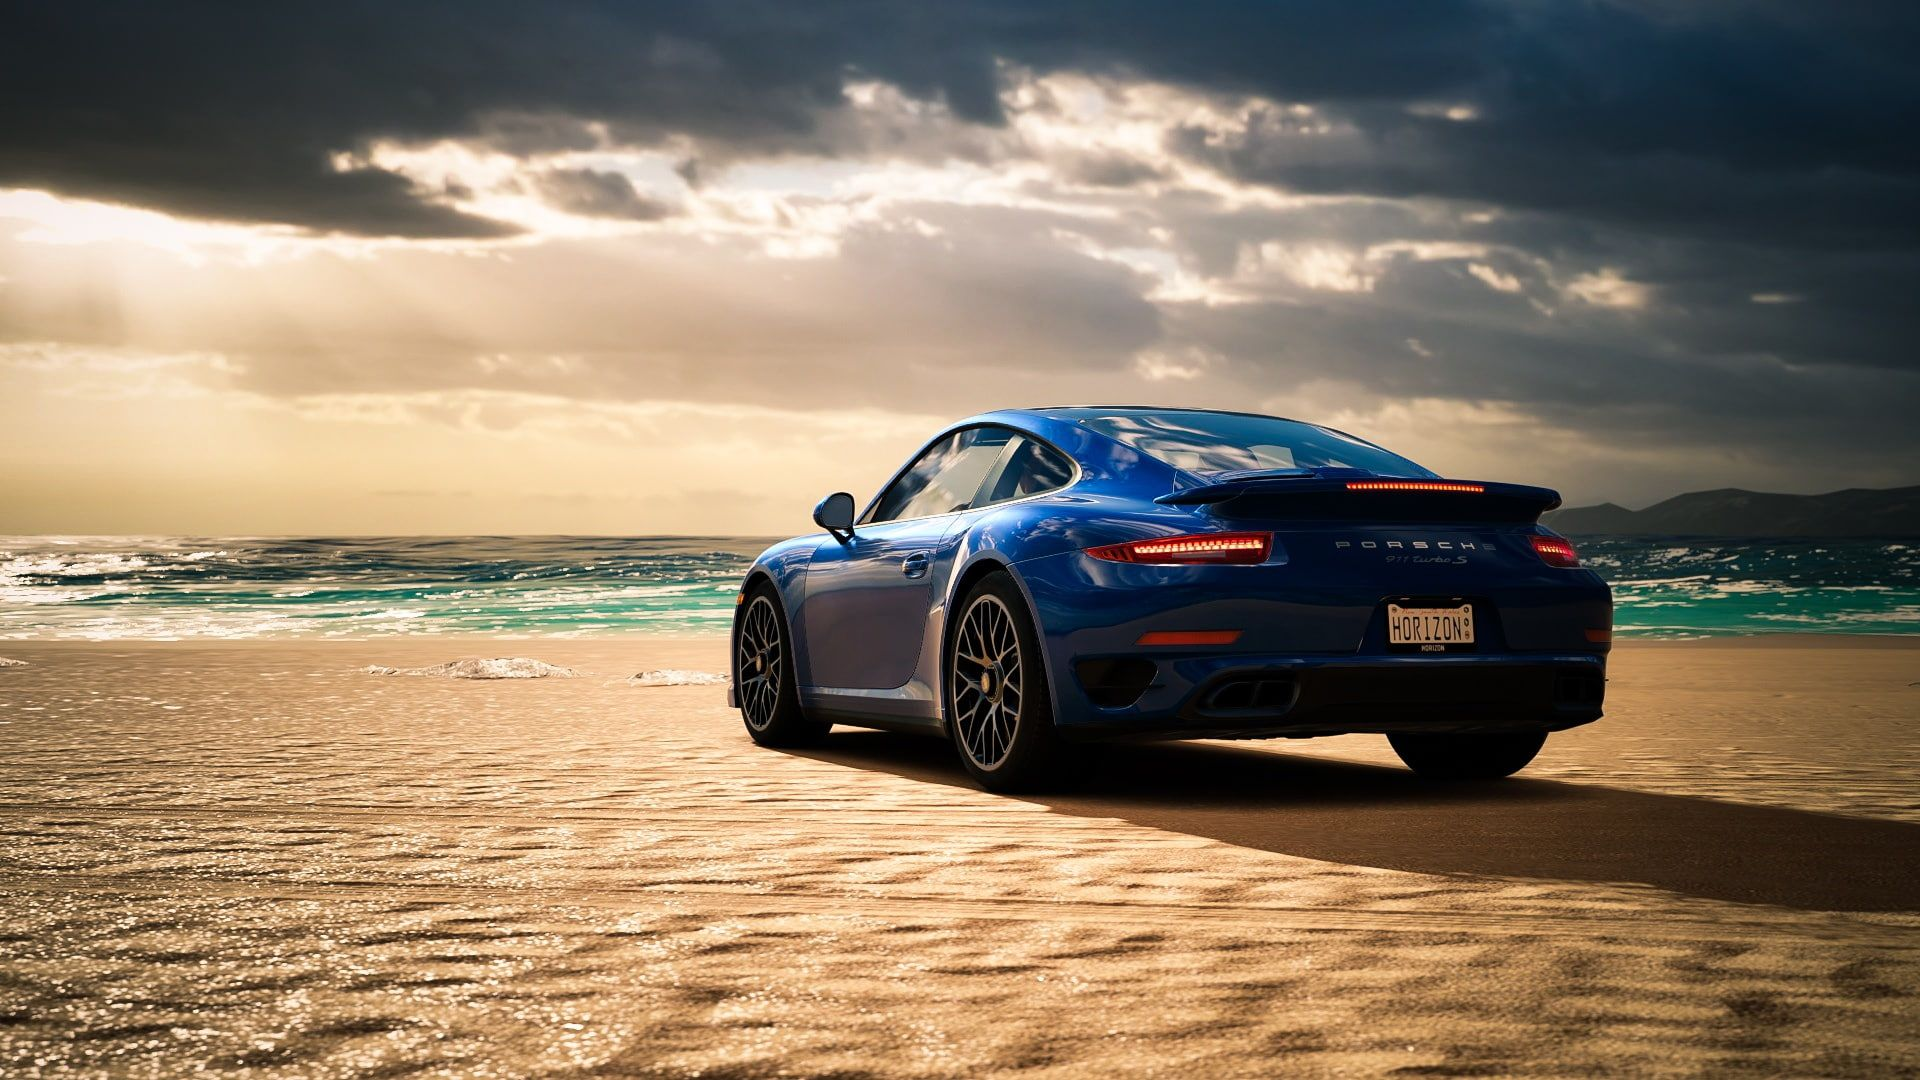 Pin By Reshvark On Cars In 2021 Porsche 911 Turbo Sports Car 911 Turbo